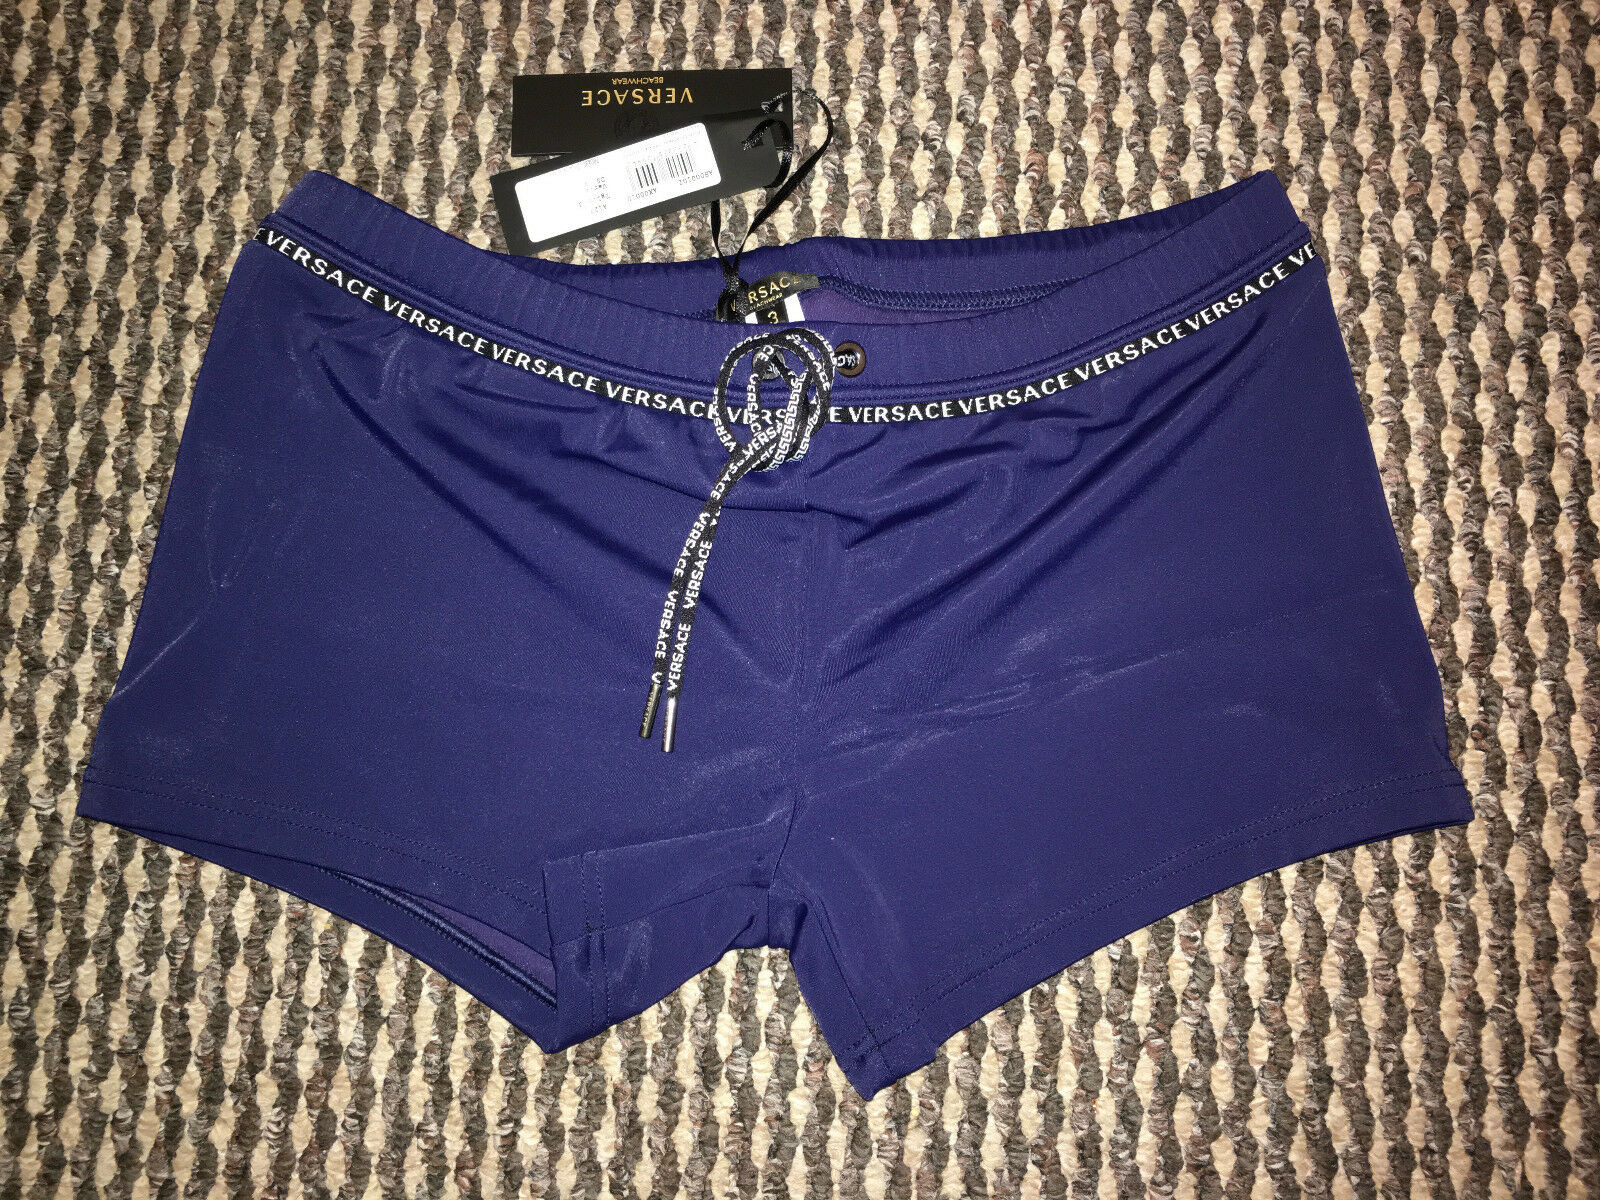 VERSACE Men's Iconic Navy bluee Swim Trunks Shorts Size M  IT 4